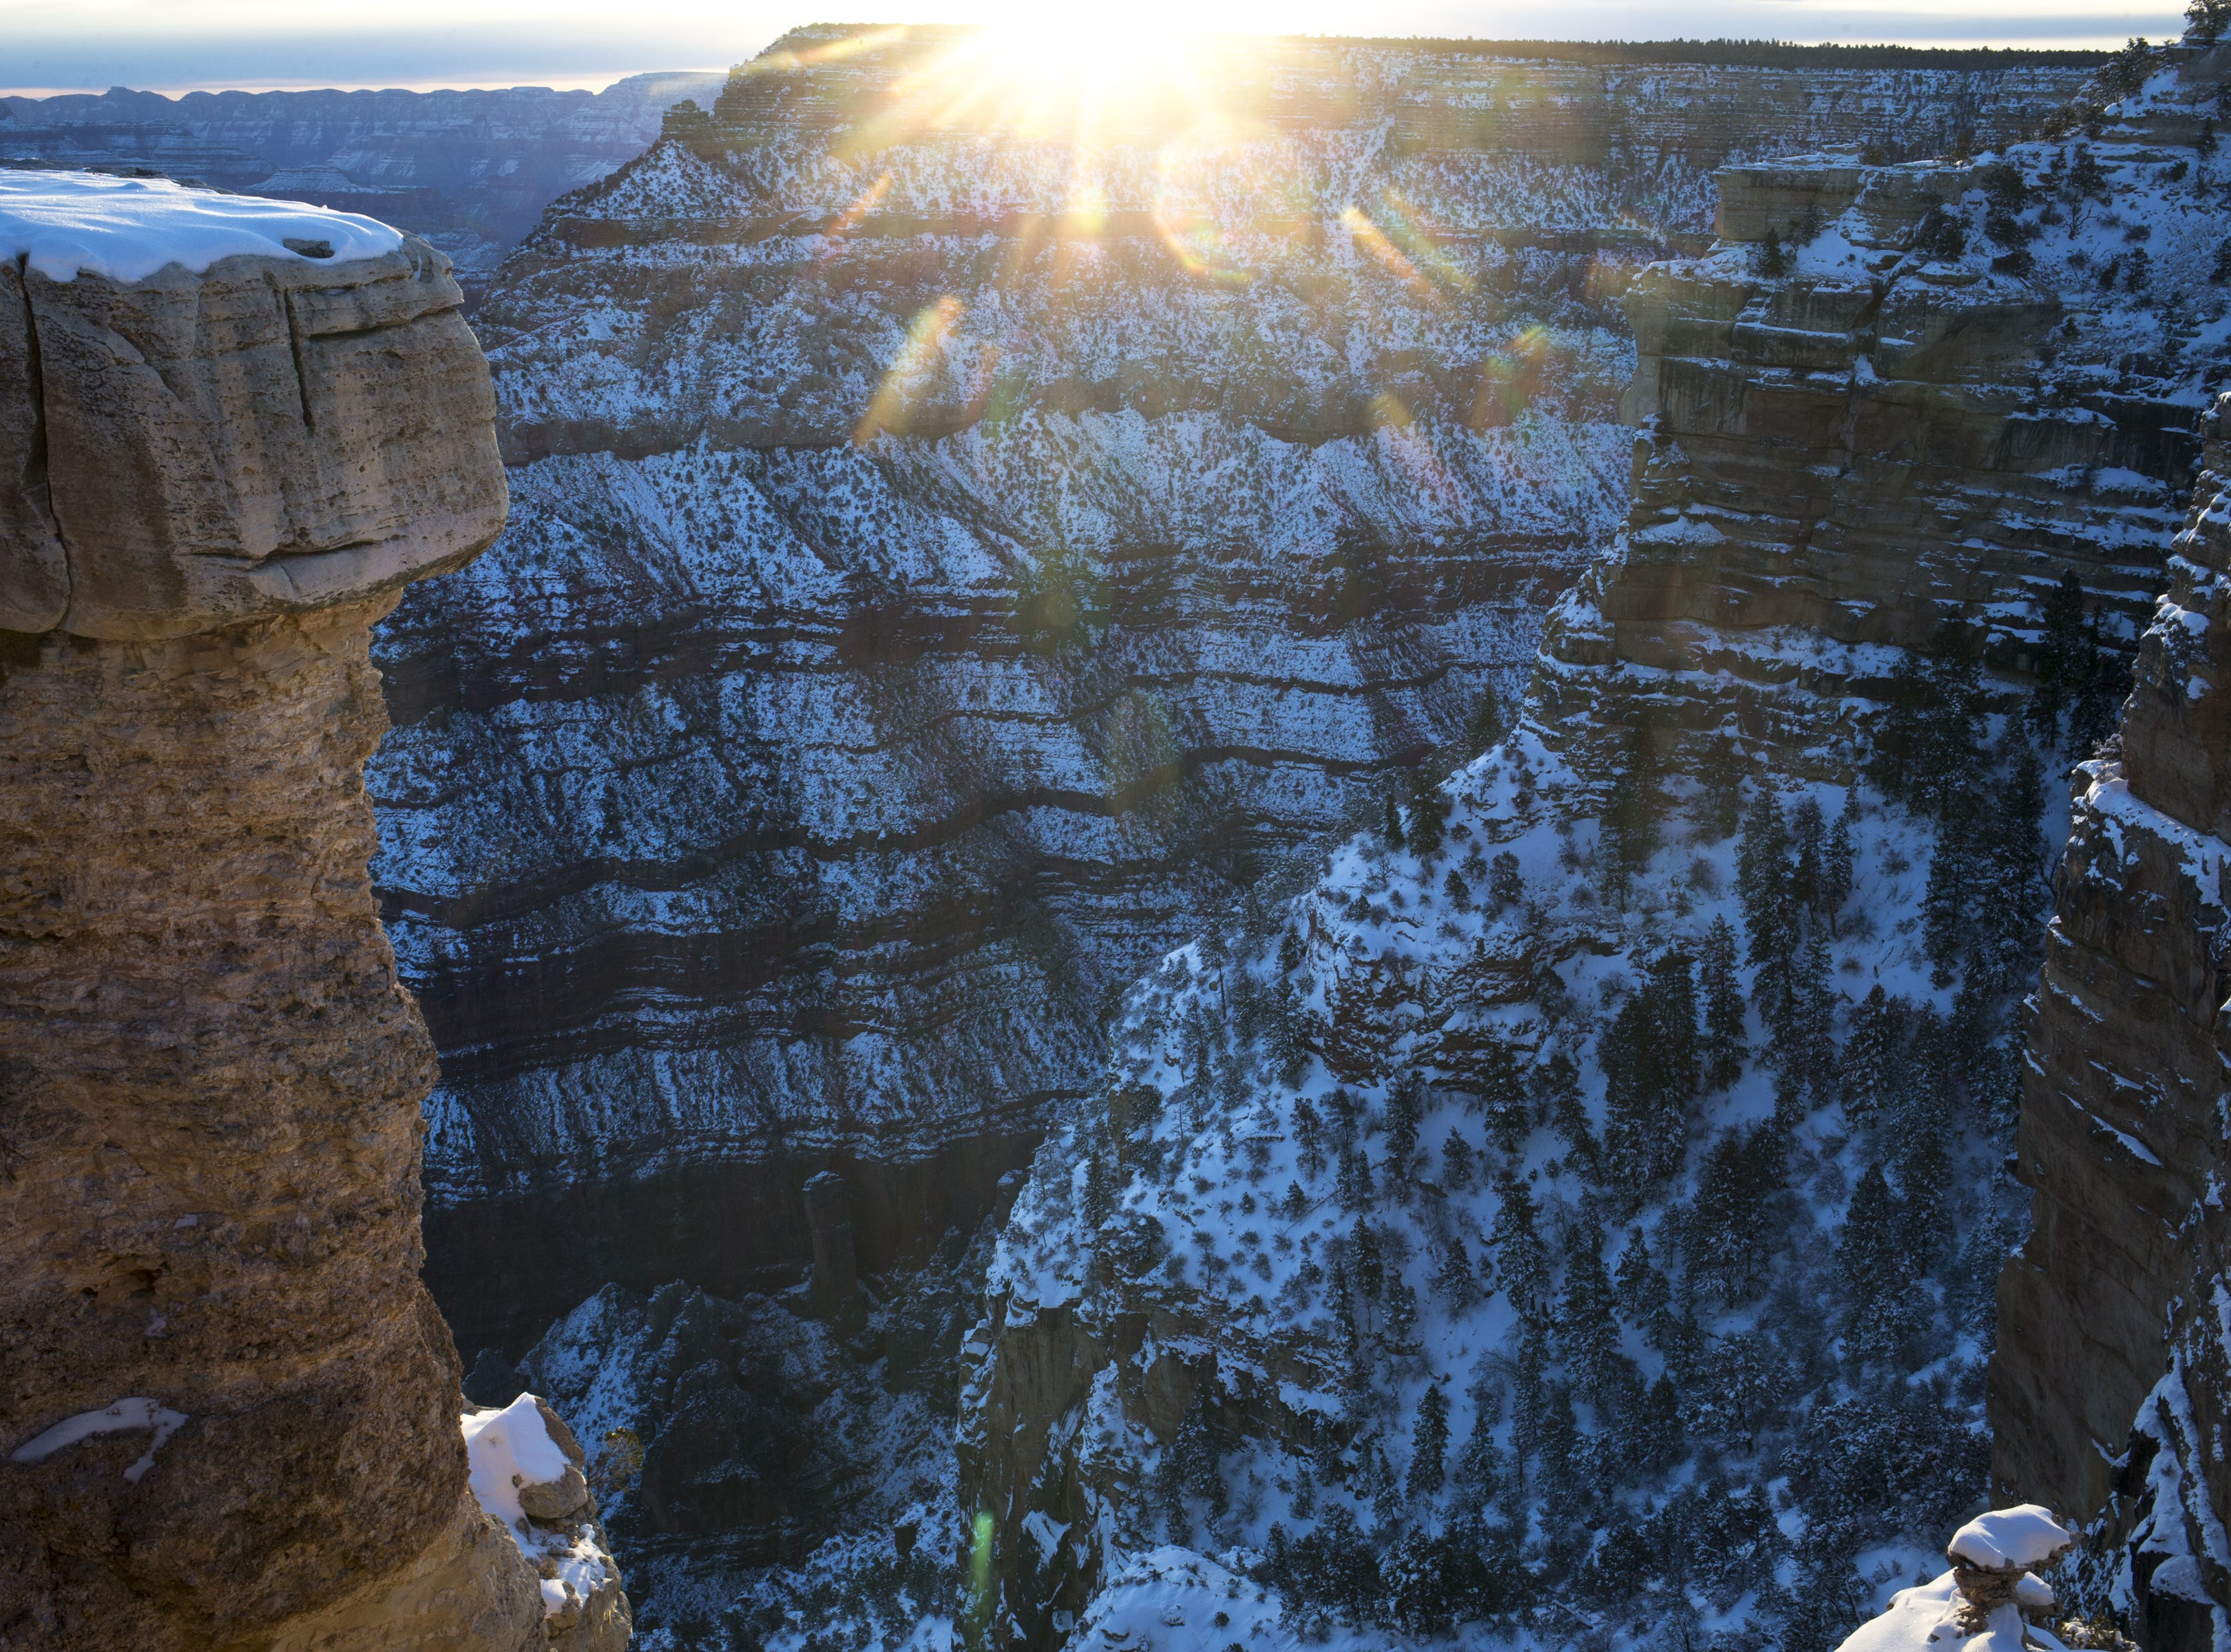 Sunrise at Mather Point on Feb. 20, 2019, at the South Rim of Grand Canyon National Park, Arizona.